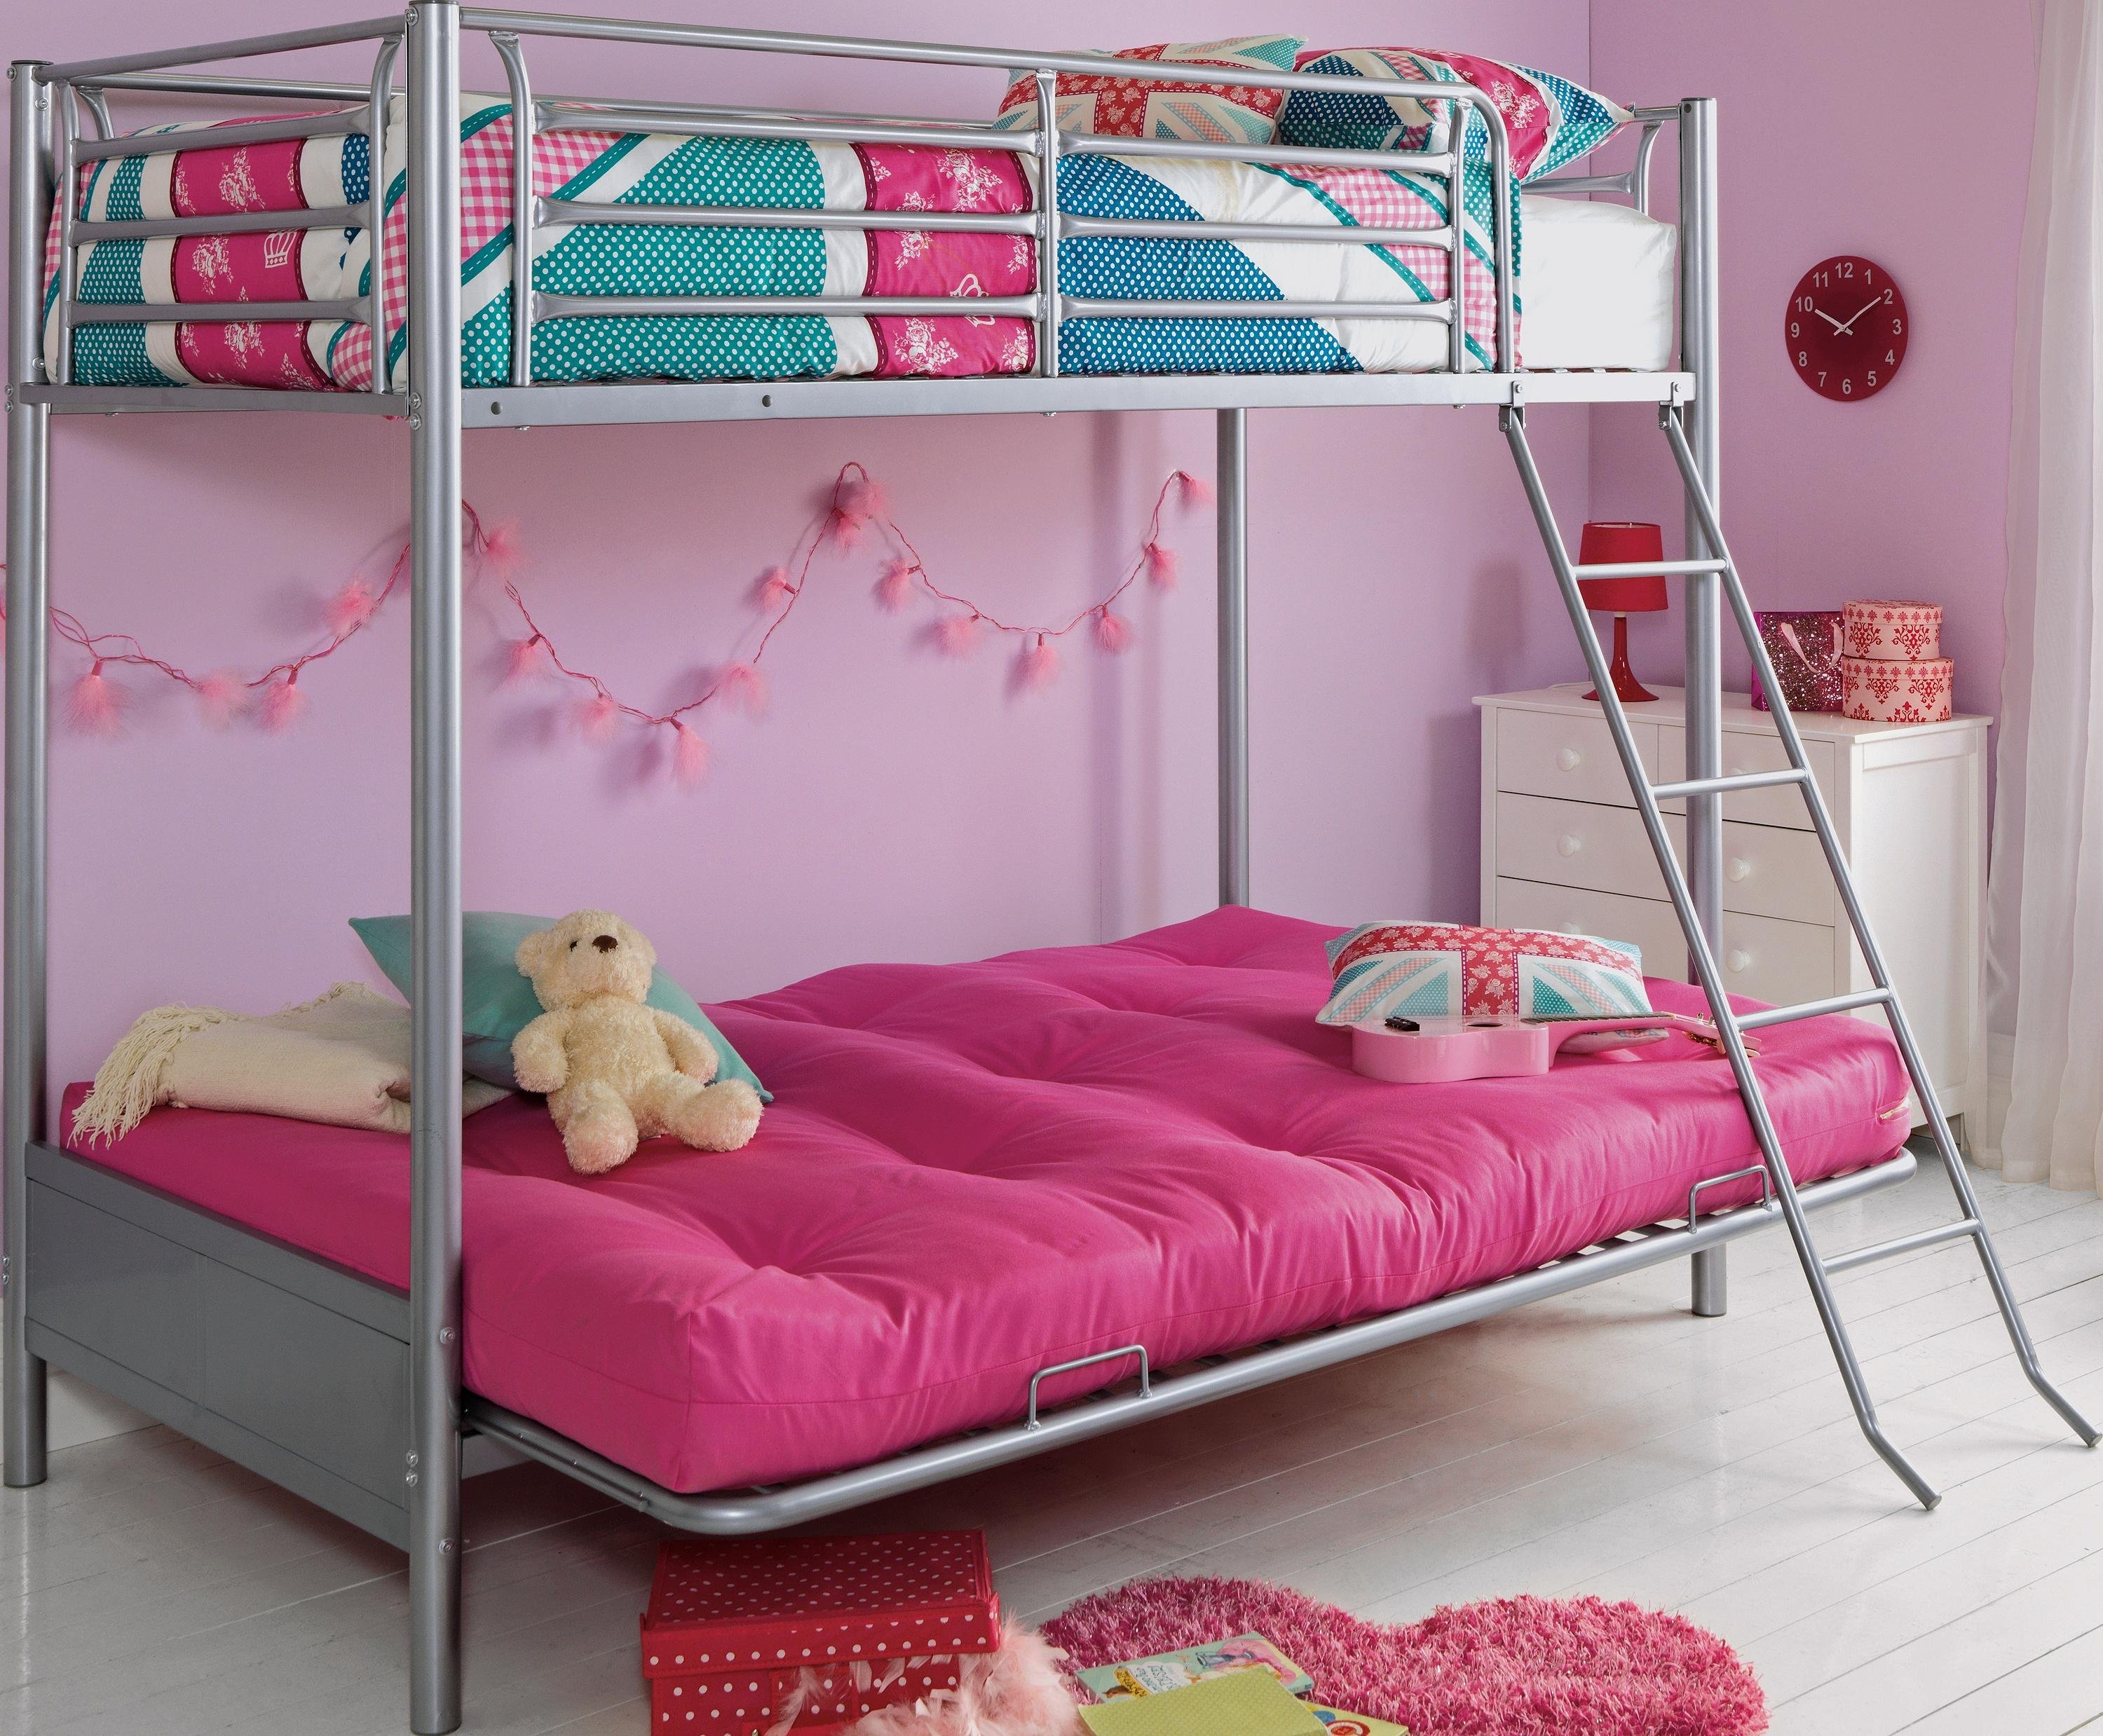 bunk beds with sofa bed underneath argos how thick should a mattress be buy home metal frame fuchsia futon kids